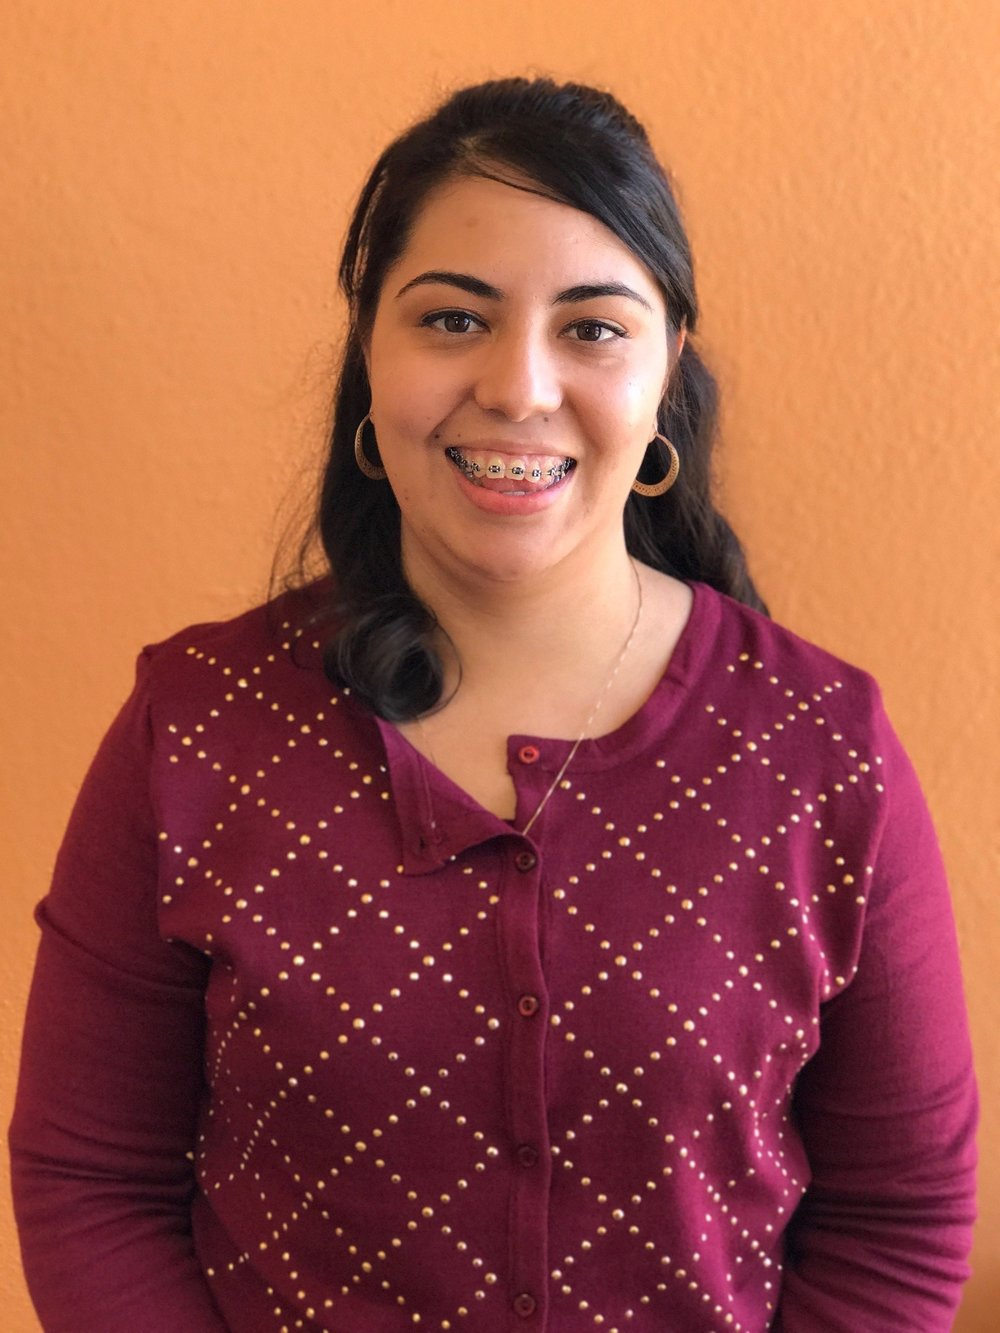 Cindy Zavala, BS Professional Research Assistant  - Cindy received her BS in Biology from the University of Colorado Denver. Her future education goal is to study Immunology. Her main focus during Healthy Start I was performing PeaPod visits with moms and babies. Her current role for Healthy Start II is scheduling Healthy Start II visits. She loves seeing how big the kids have gotten and how fun they are at this age! One time, a little girl taught her how to dance to the song